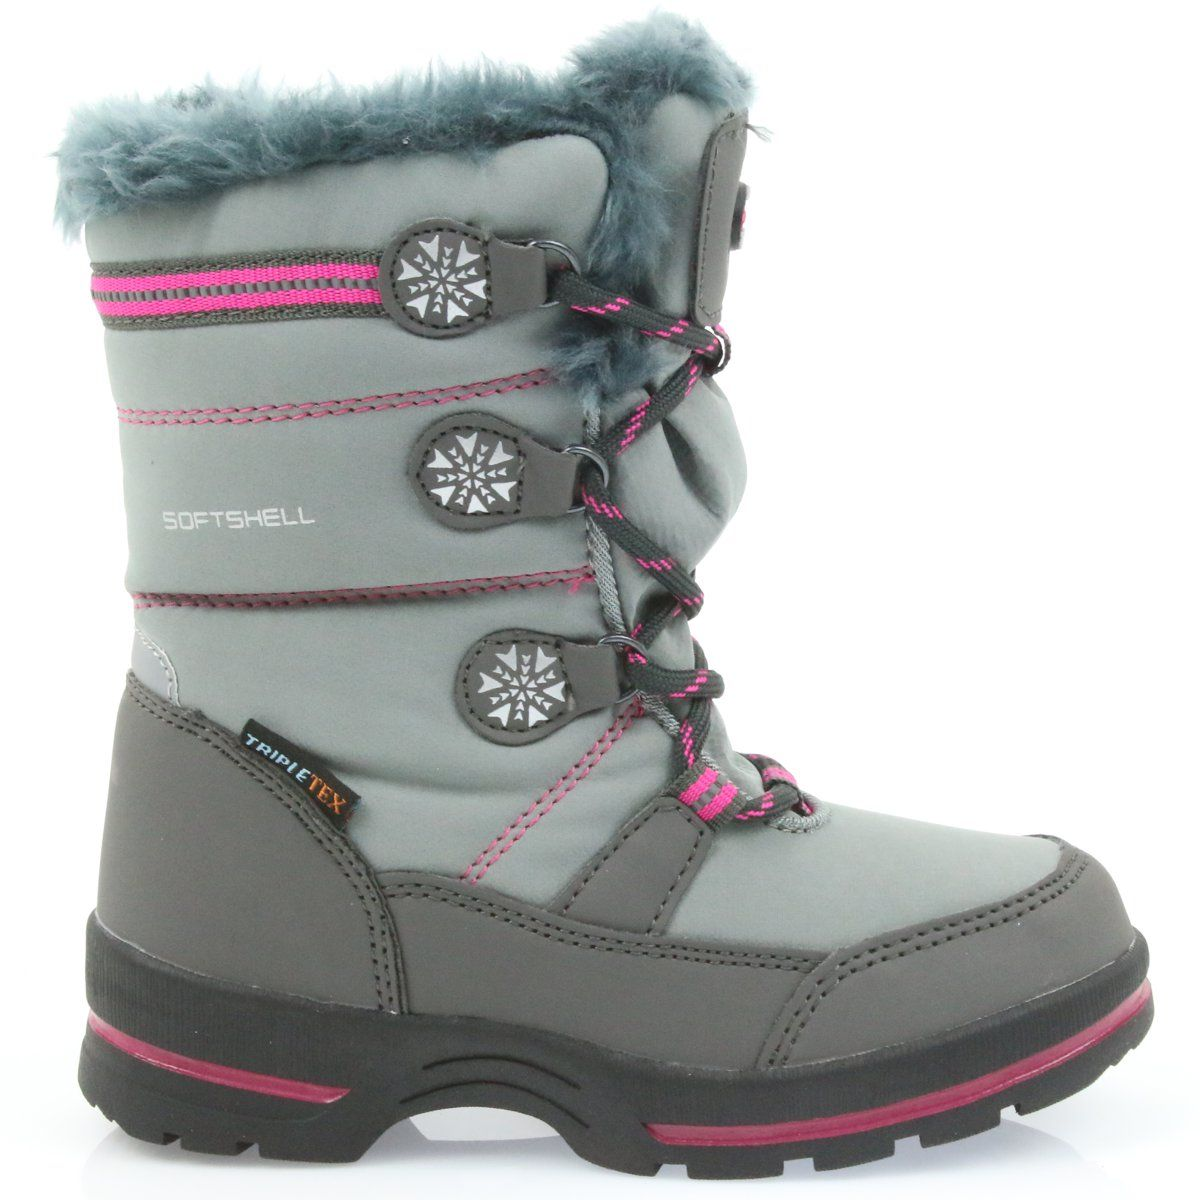 American Club American Buty Zimowe Z Membrana 702sb Szare Rozowe Boots Winter Boots Childrens Boots